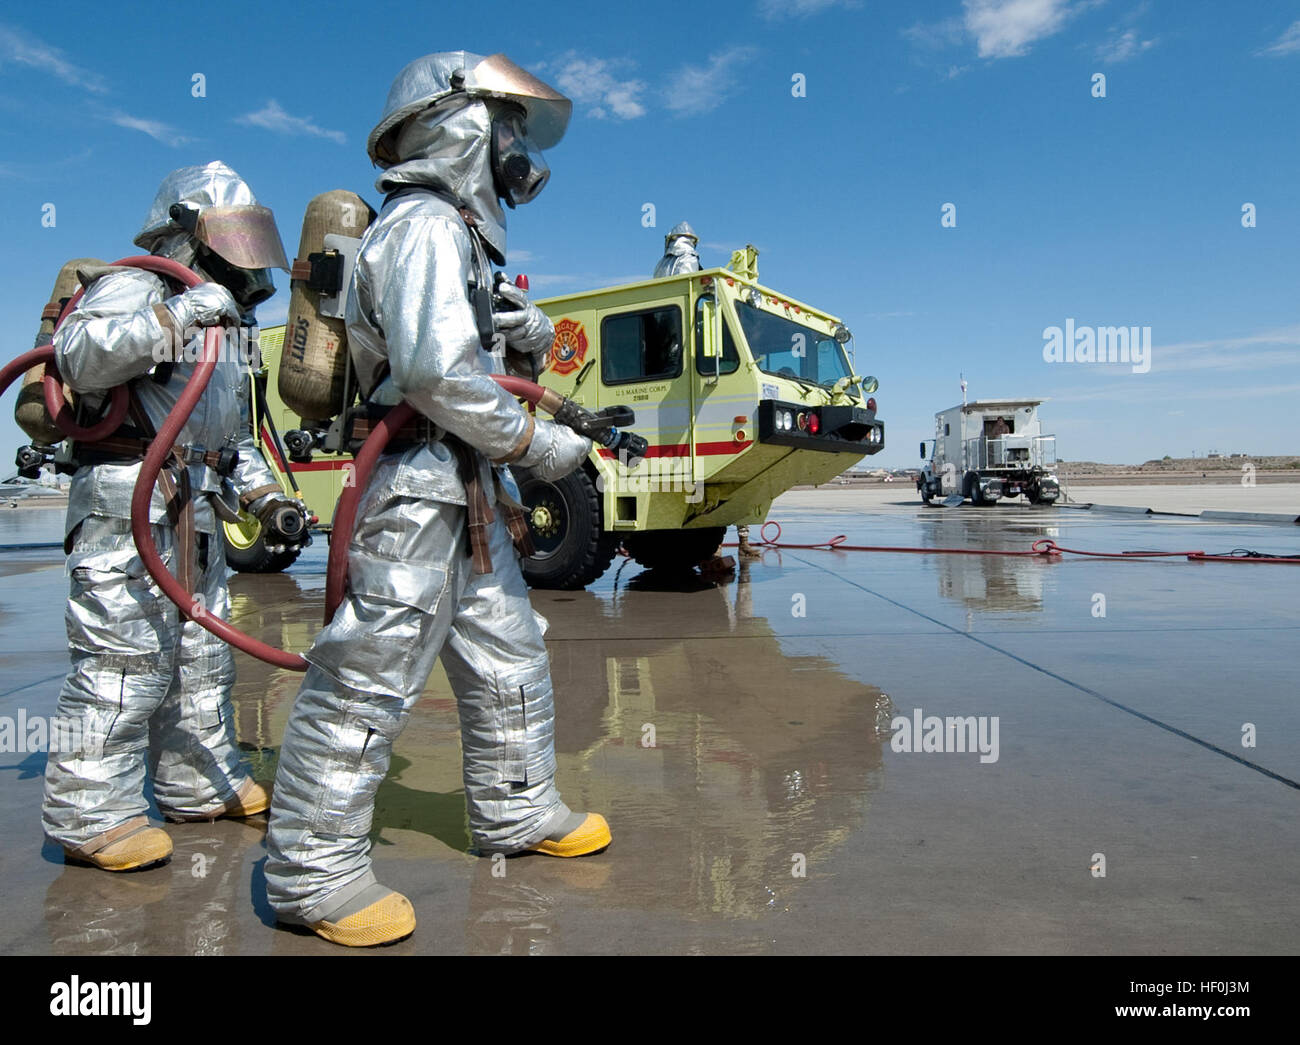 us marine firefighters with marine corps air station mcas yuma aircraft rescue and firefighting team stand ready to assist their counterparts from